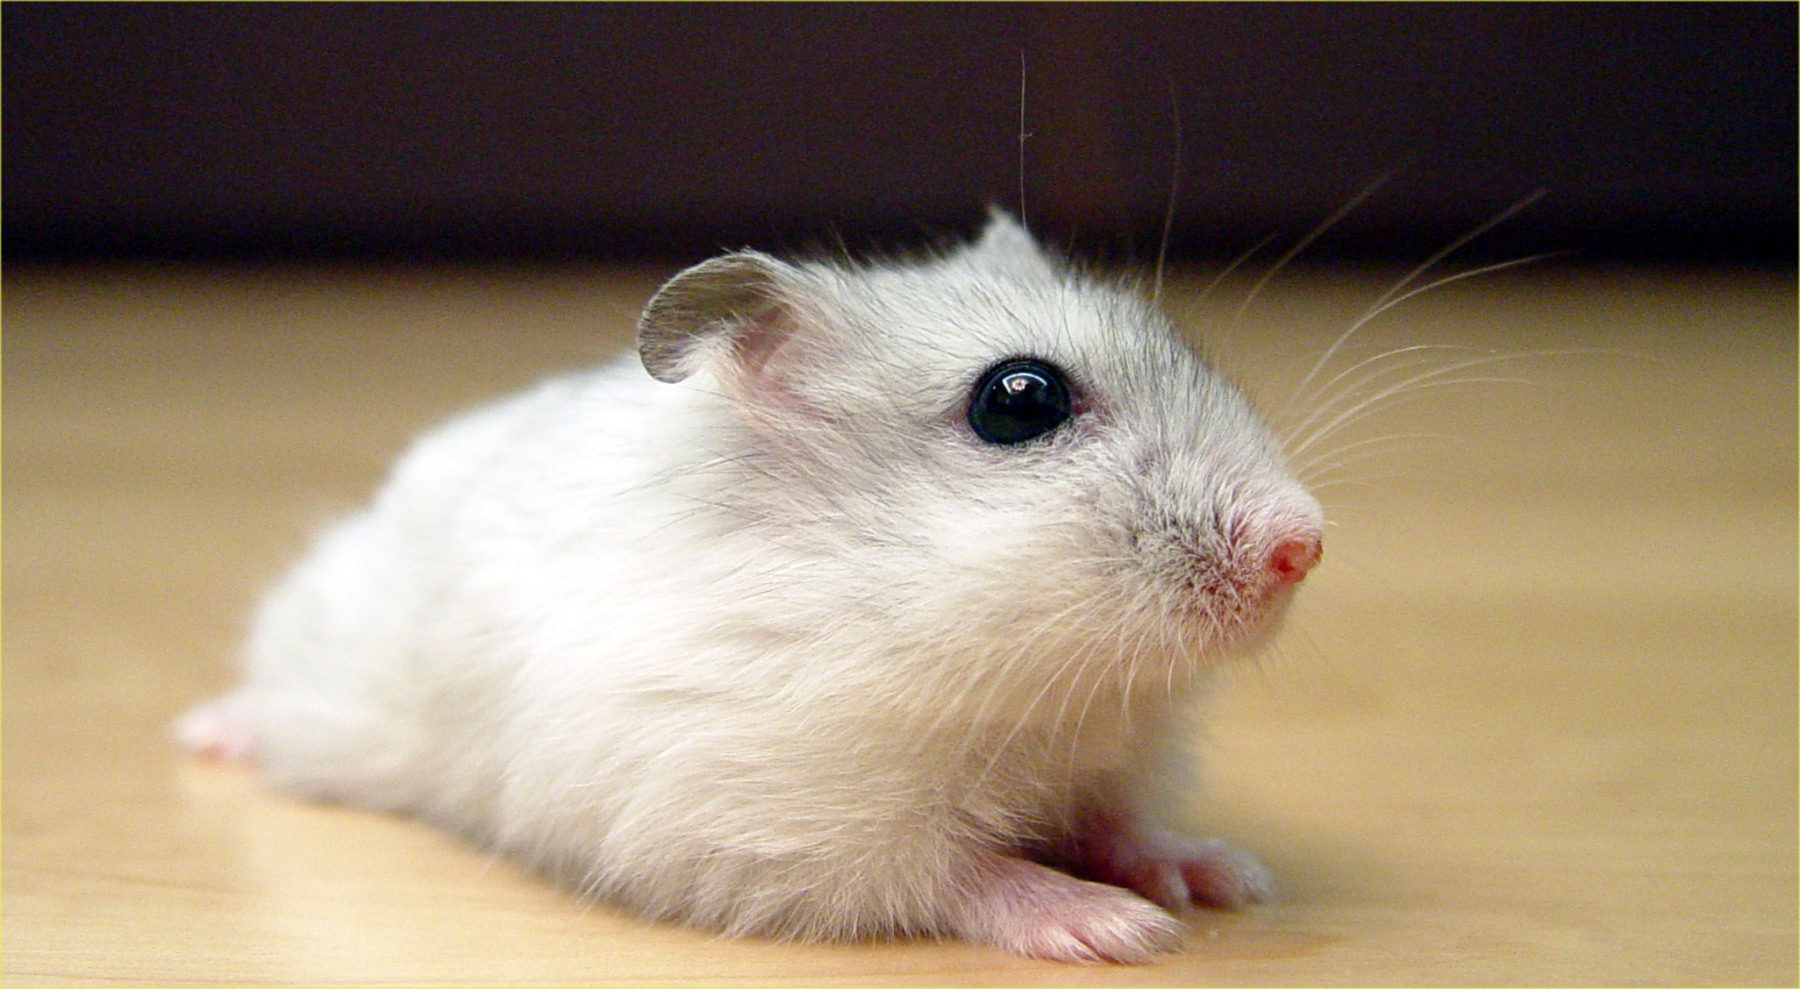 Spud the White Russian Dwarf Hamster